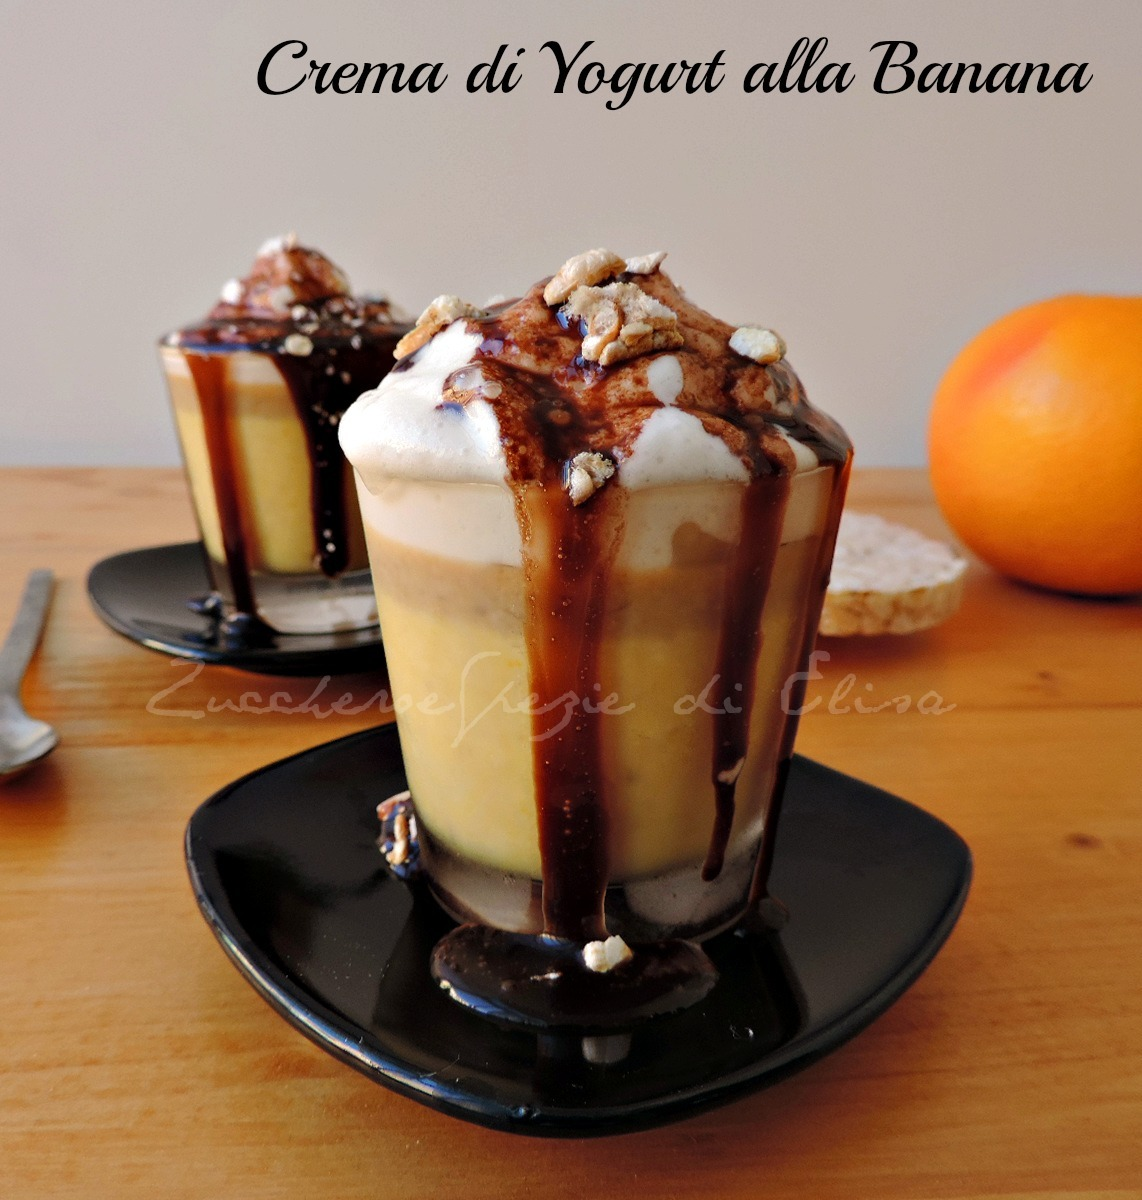 Crema di yogurt alla banana